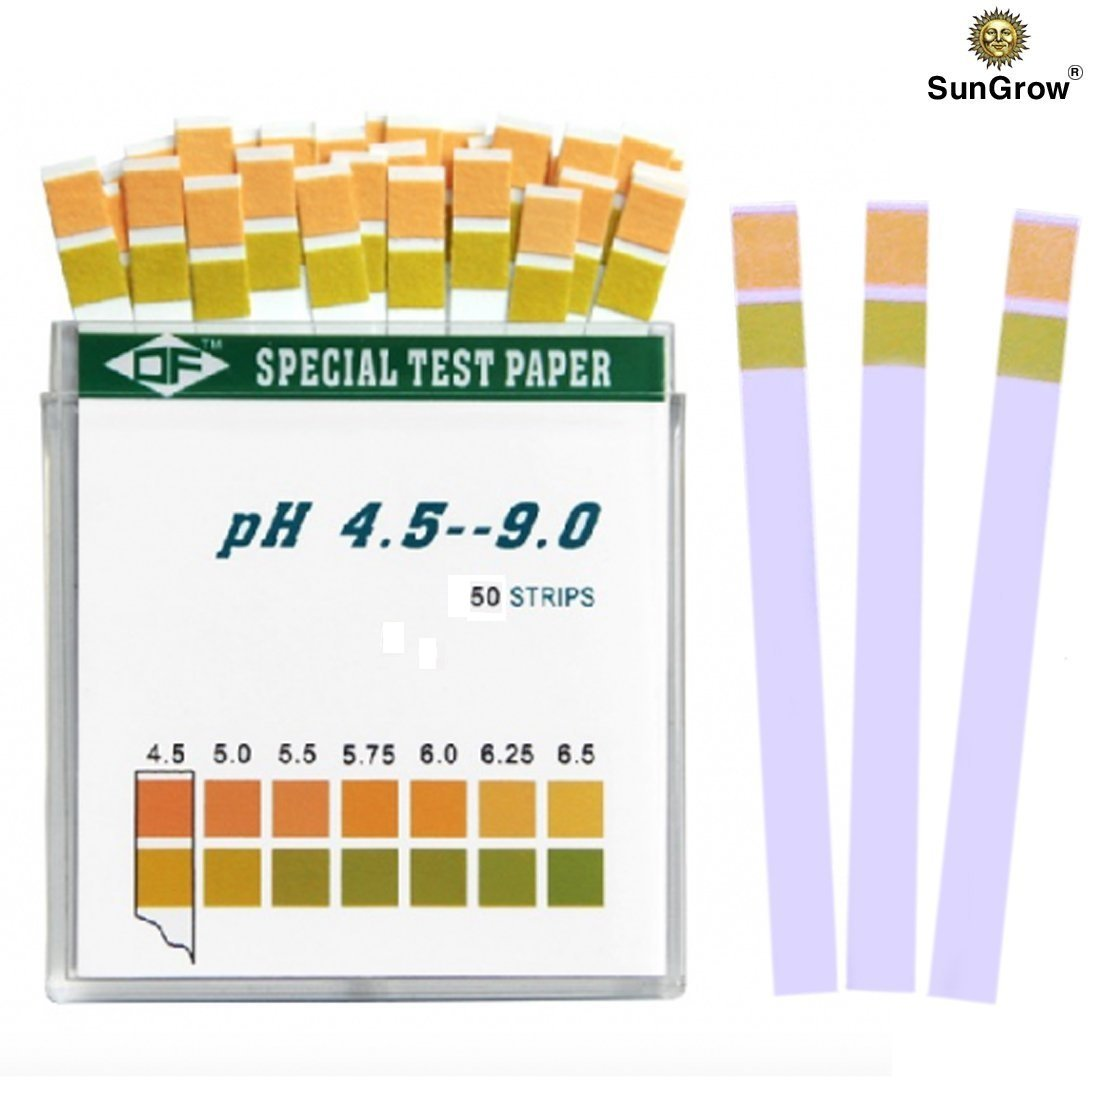 SunGrow Betta pH Test Strips - Just dip & read: Ensure Maximum comfort for fish & invertebrates: No complicated setup required